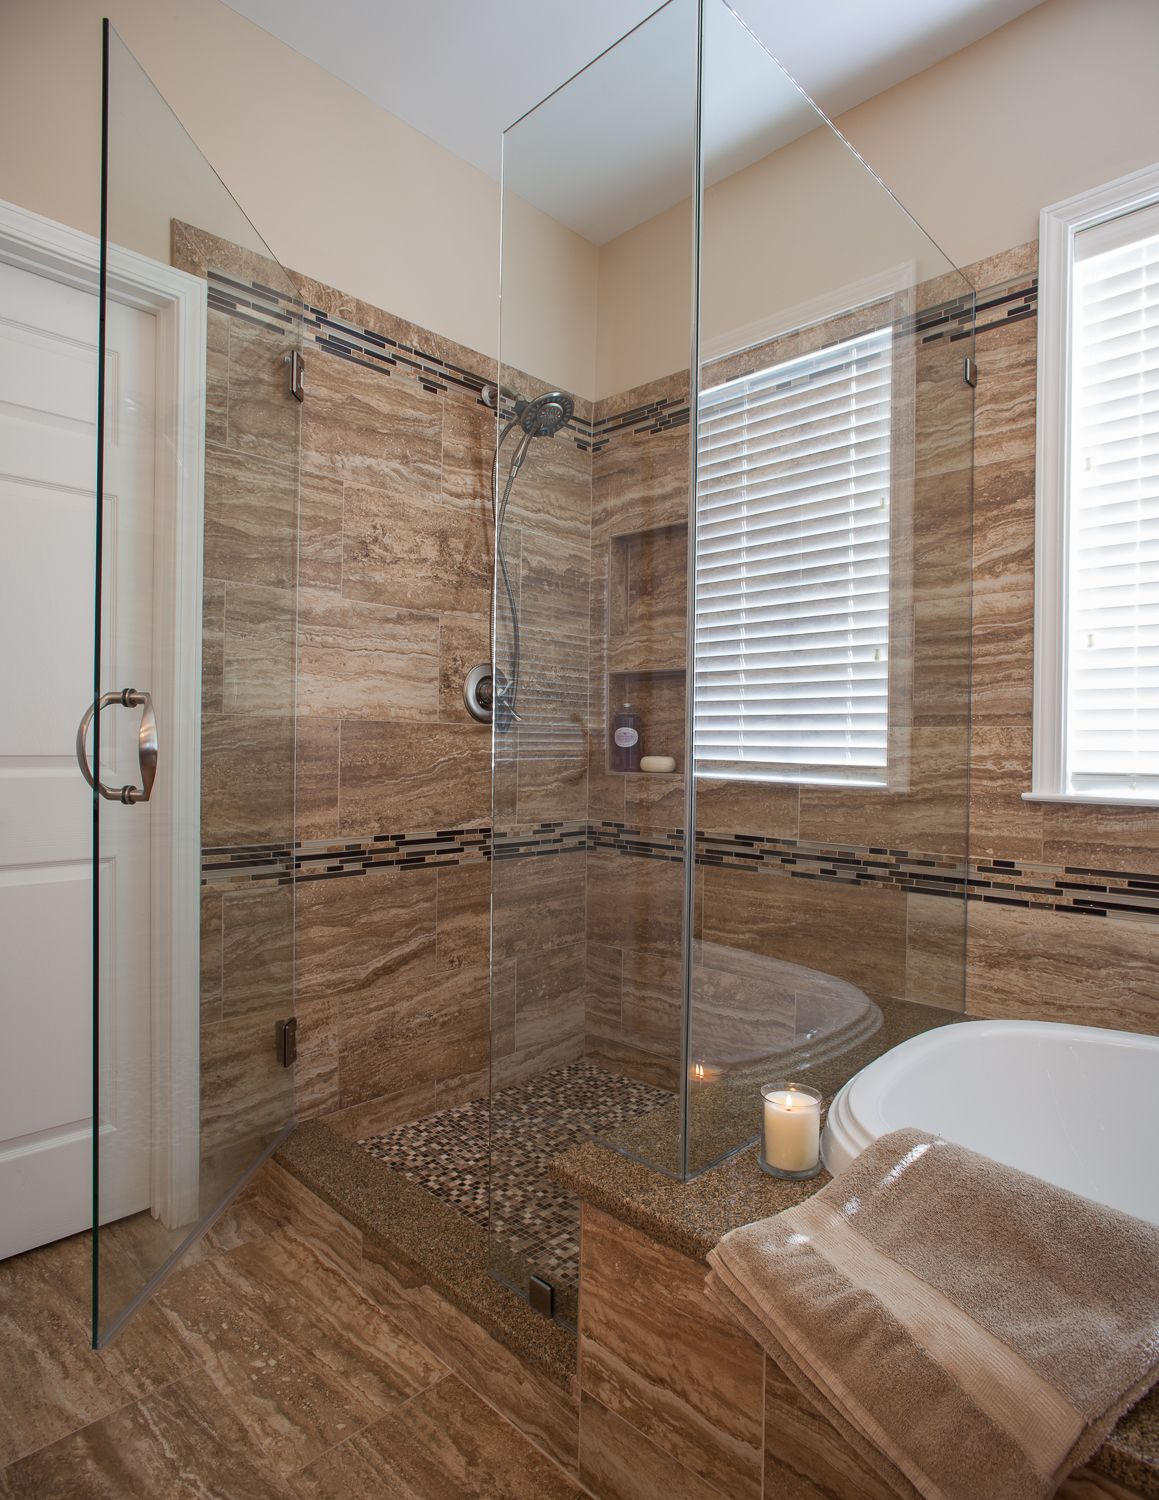 walk in shower ideas for master bathroom with glass divider and wooden wall and blinds window